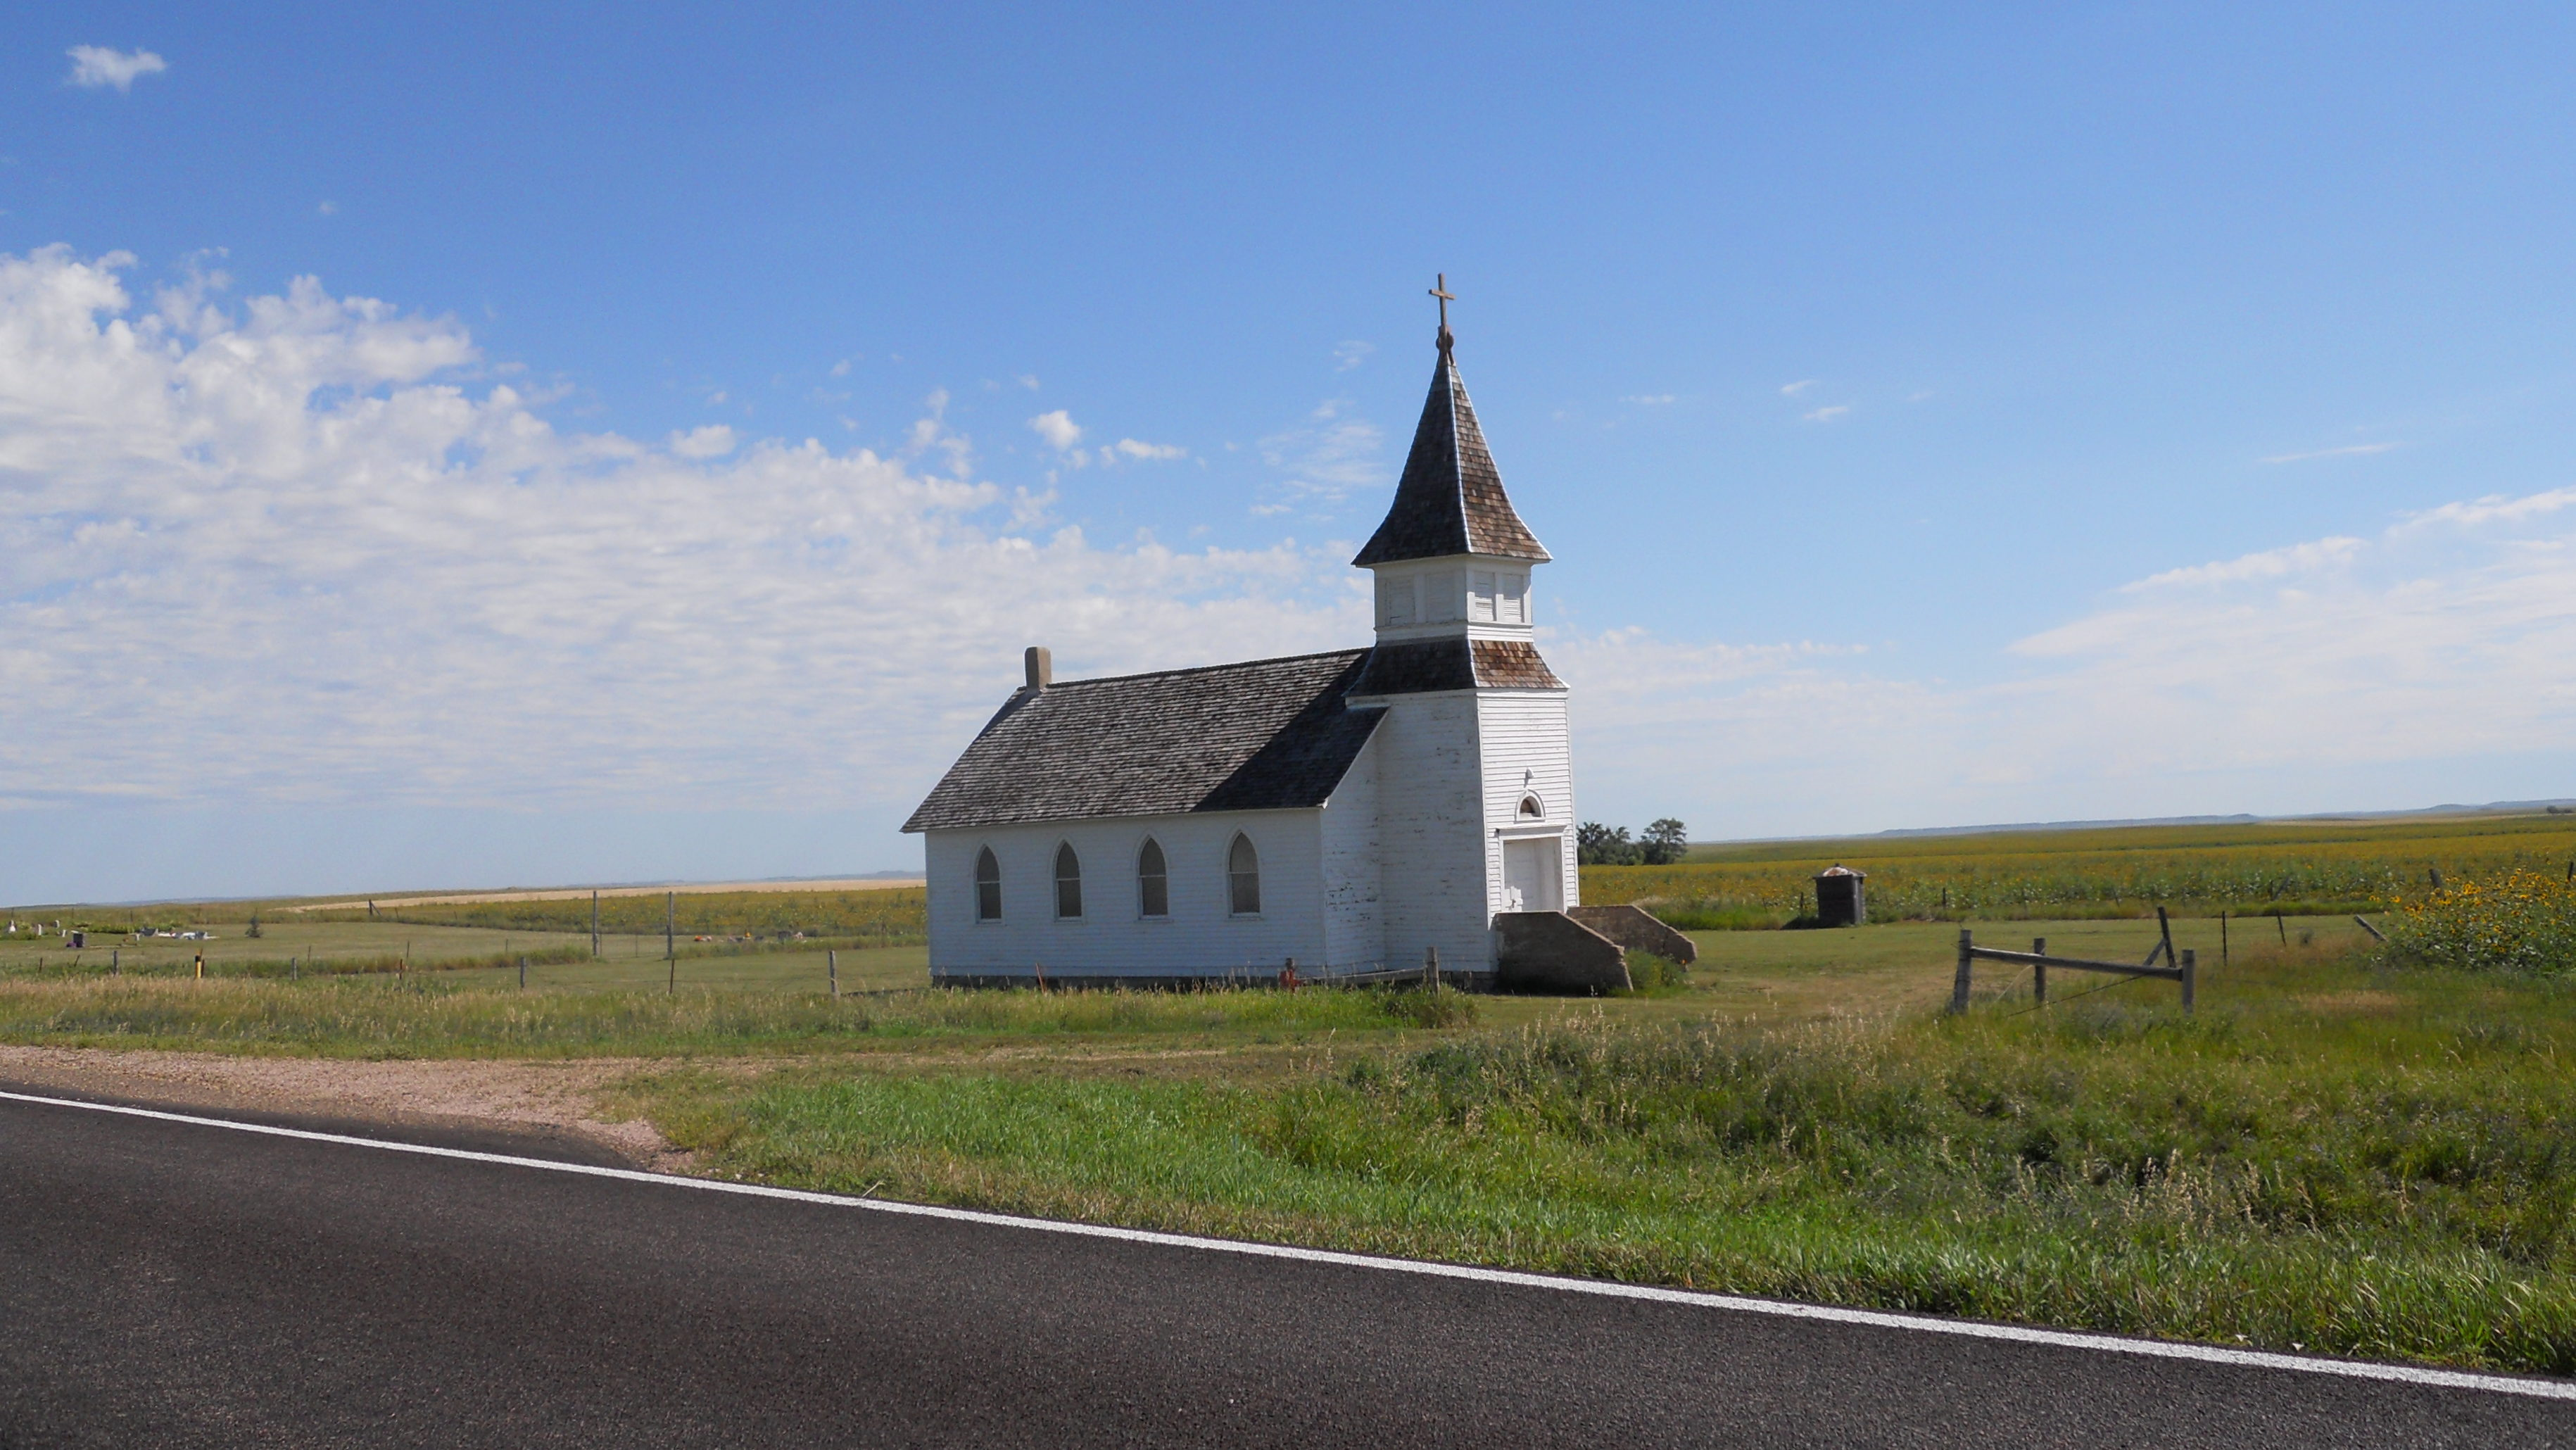 old, white painted Church in South Dakota Countryside along Route 79